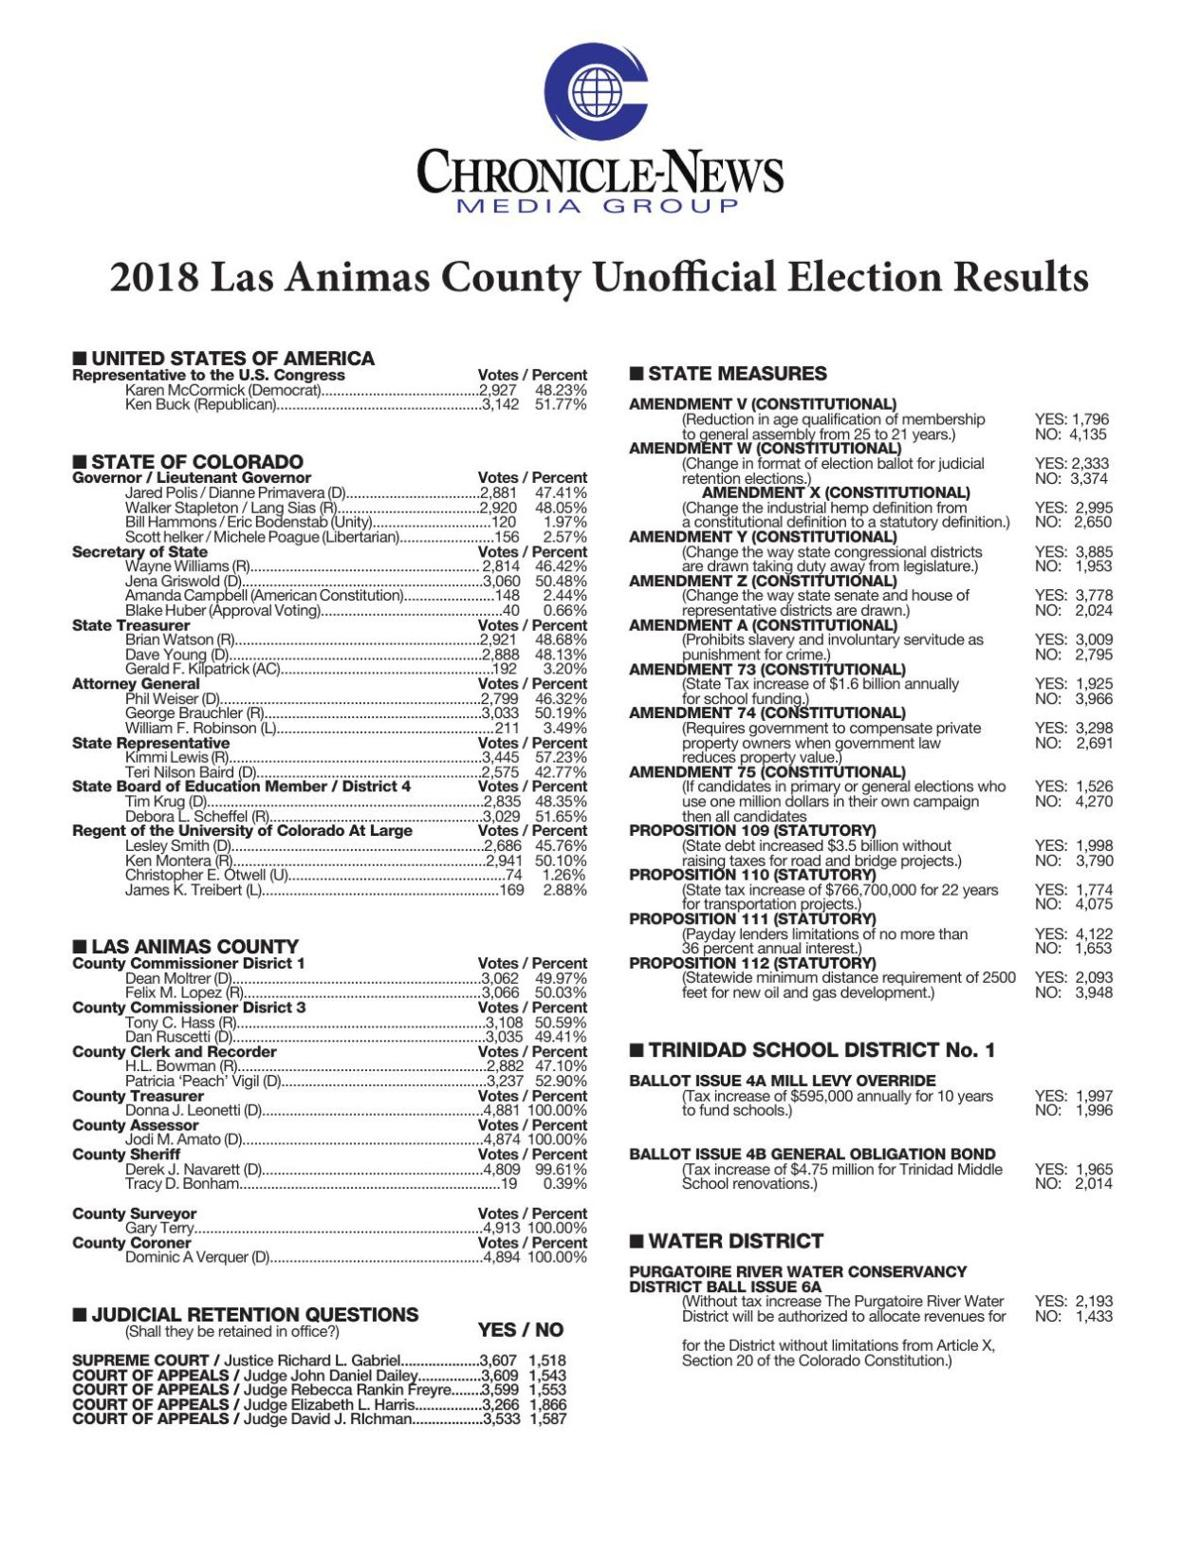 Las Animas County unofficial election results (10 p.m. Nov. 6)